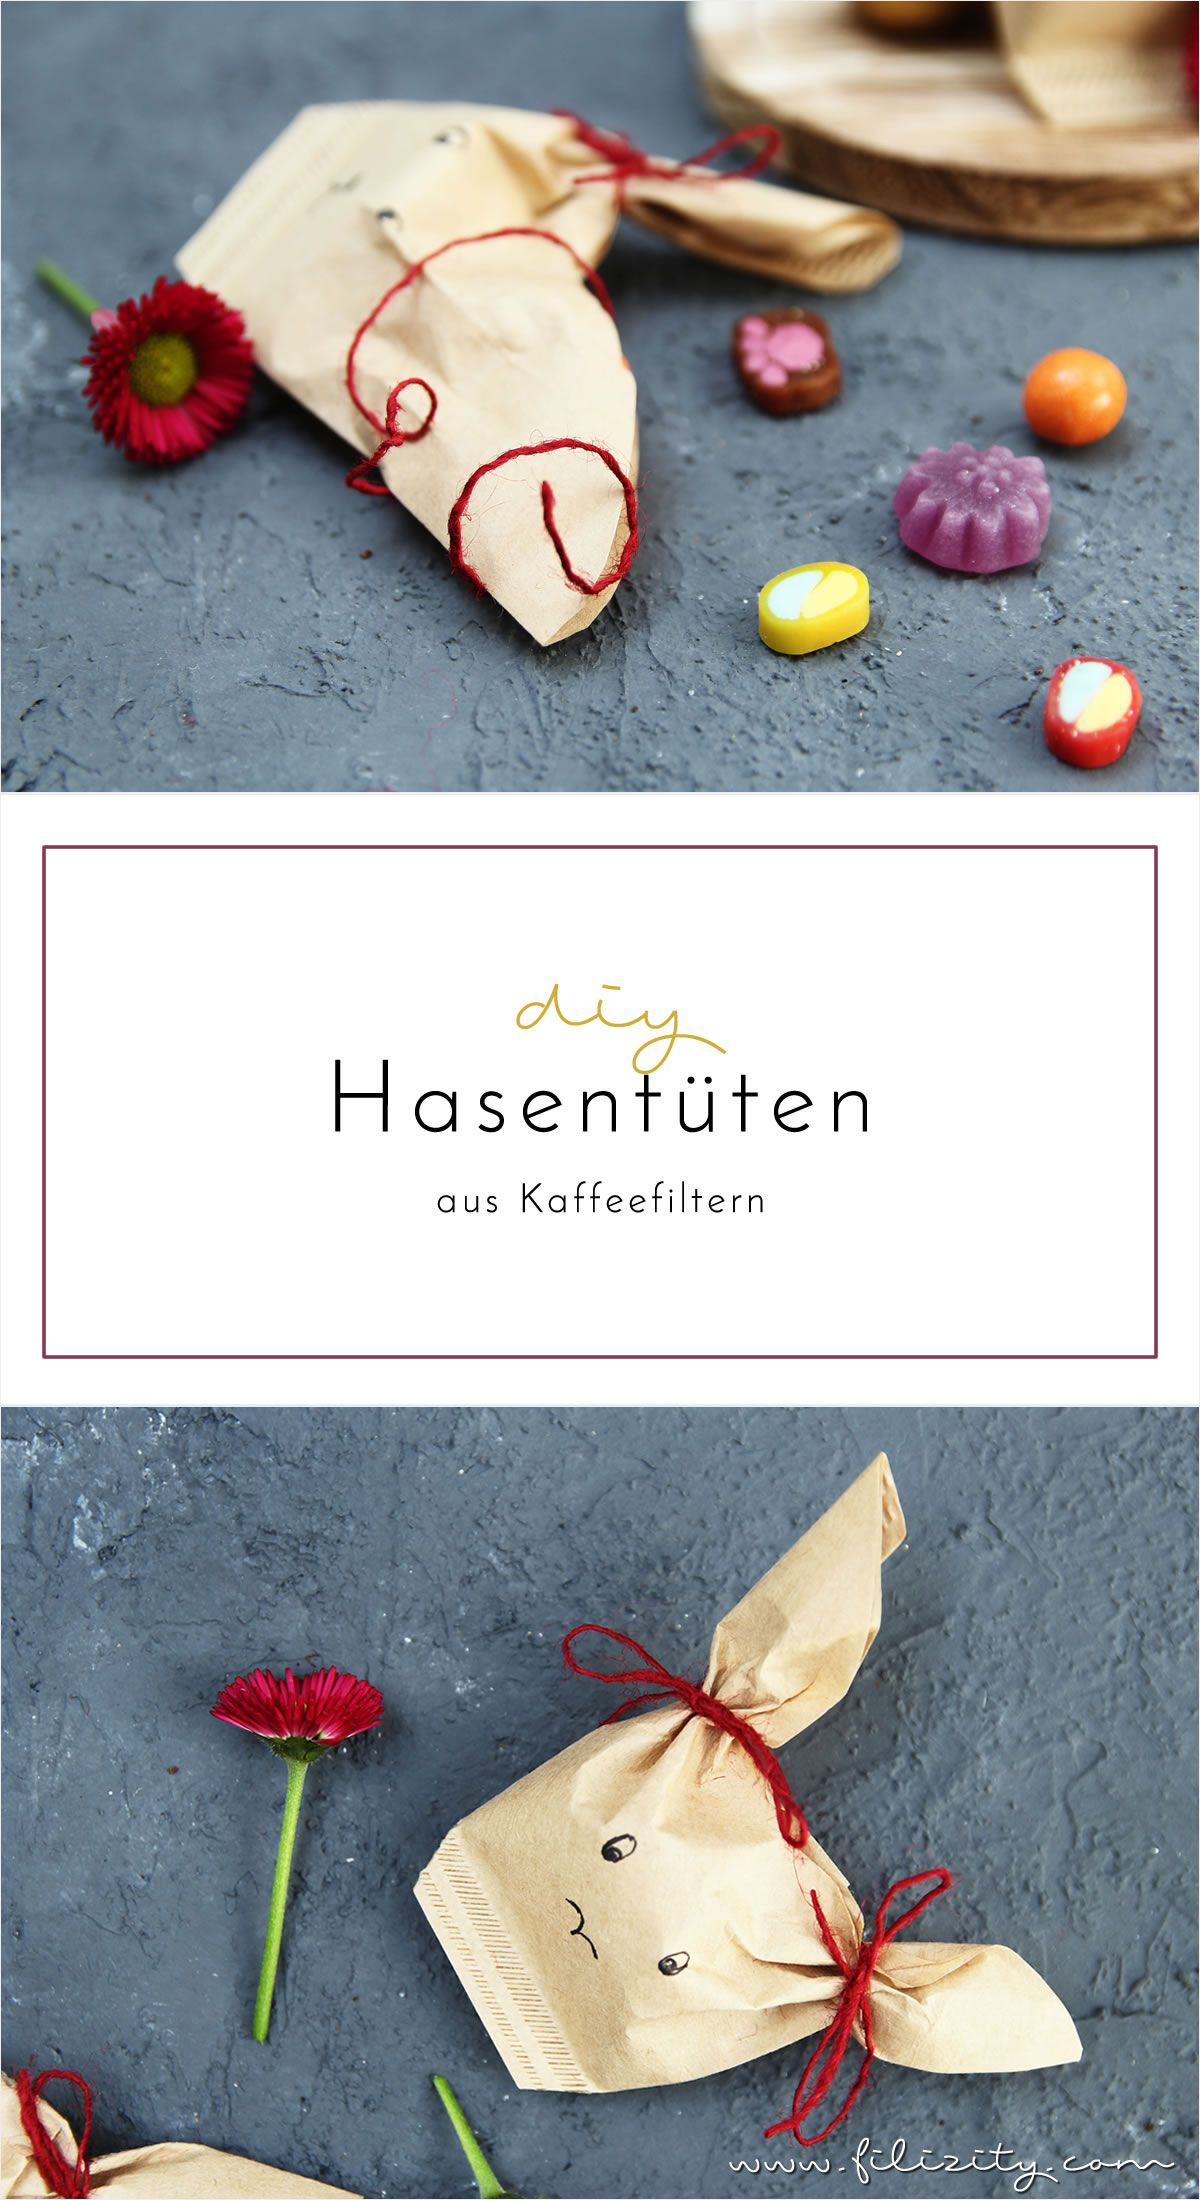 ostergeschenke verpacken diy hasent ten aus kaffeefiltern ostergeschenk schenken und h bsch. Black Bedroom Furniture Sets. Home Design Ideas